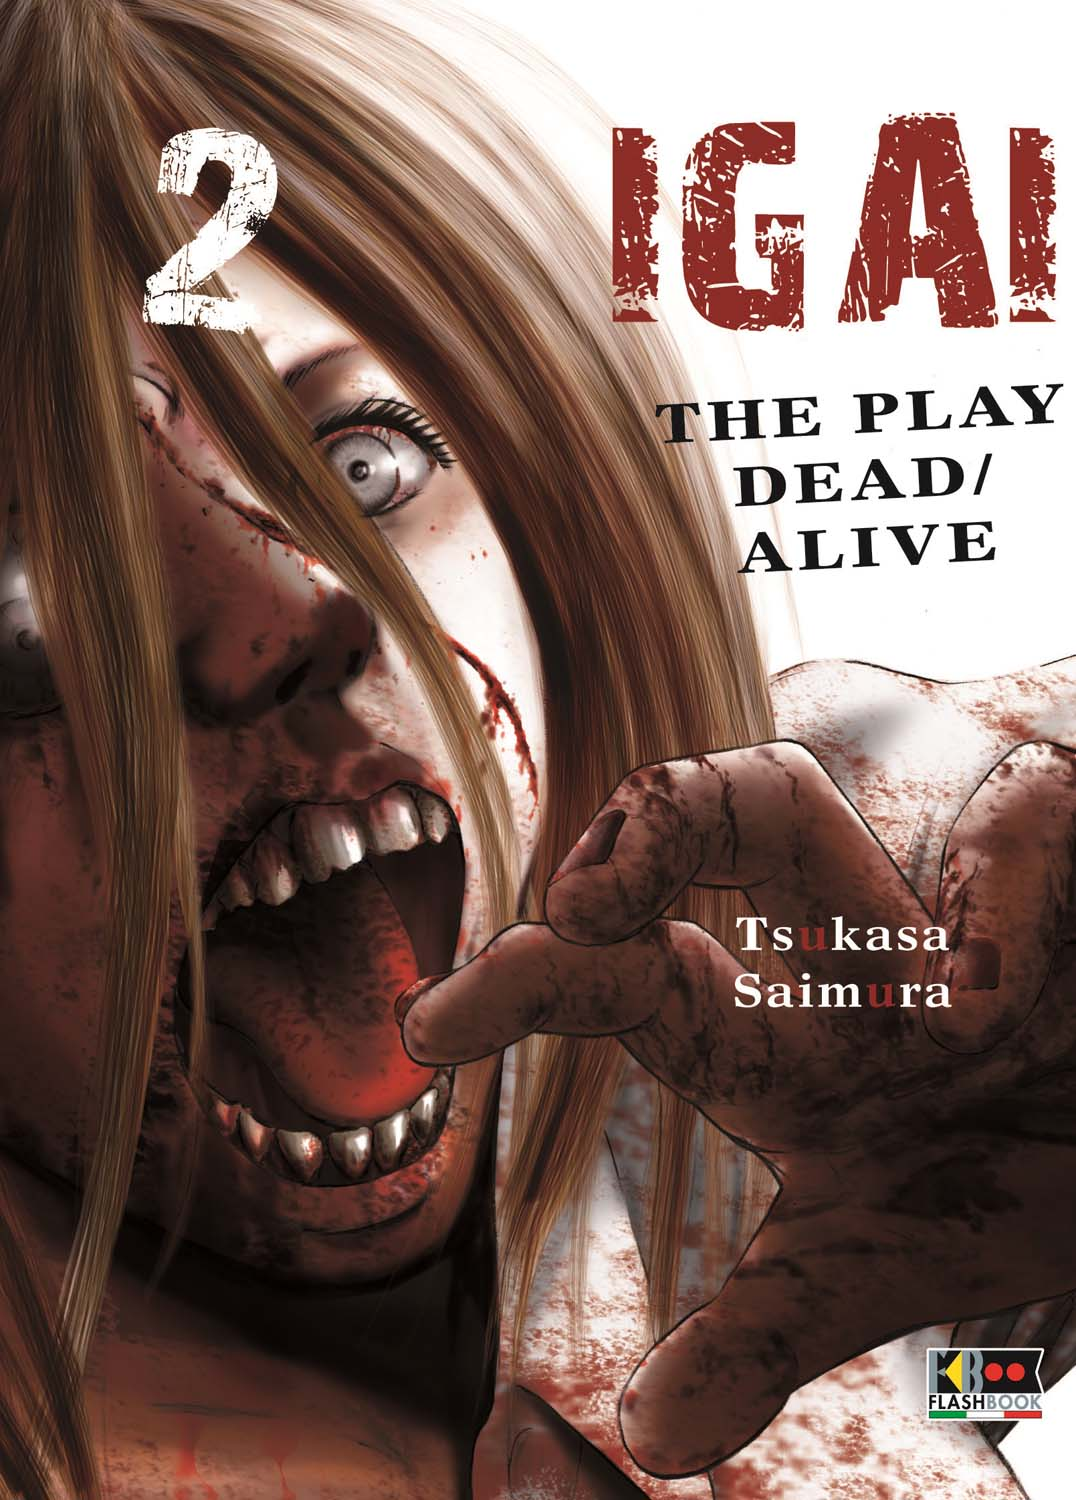 IGAI - THE PLAY DEAD/ALIVE N.   2